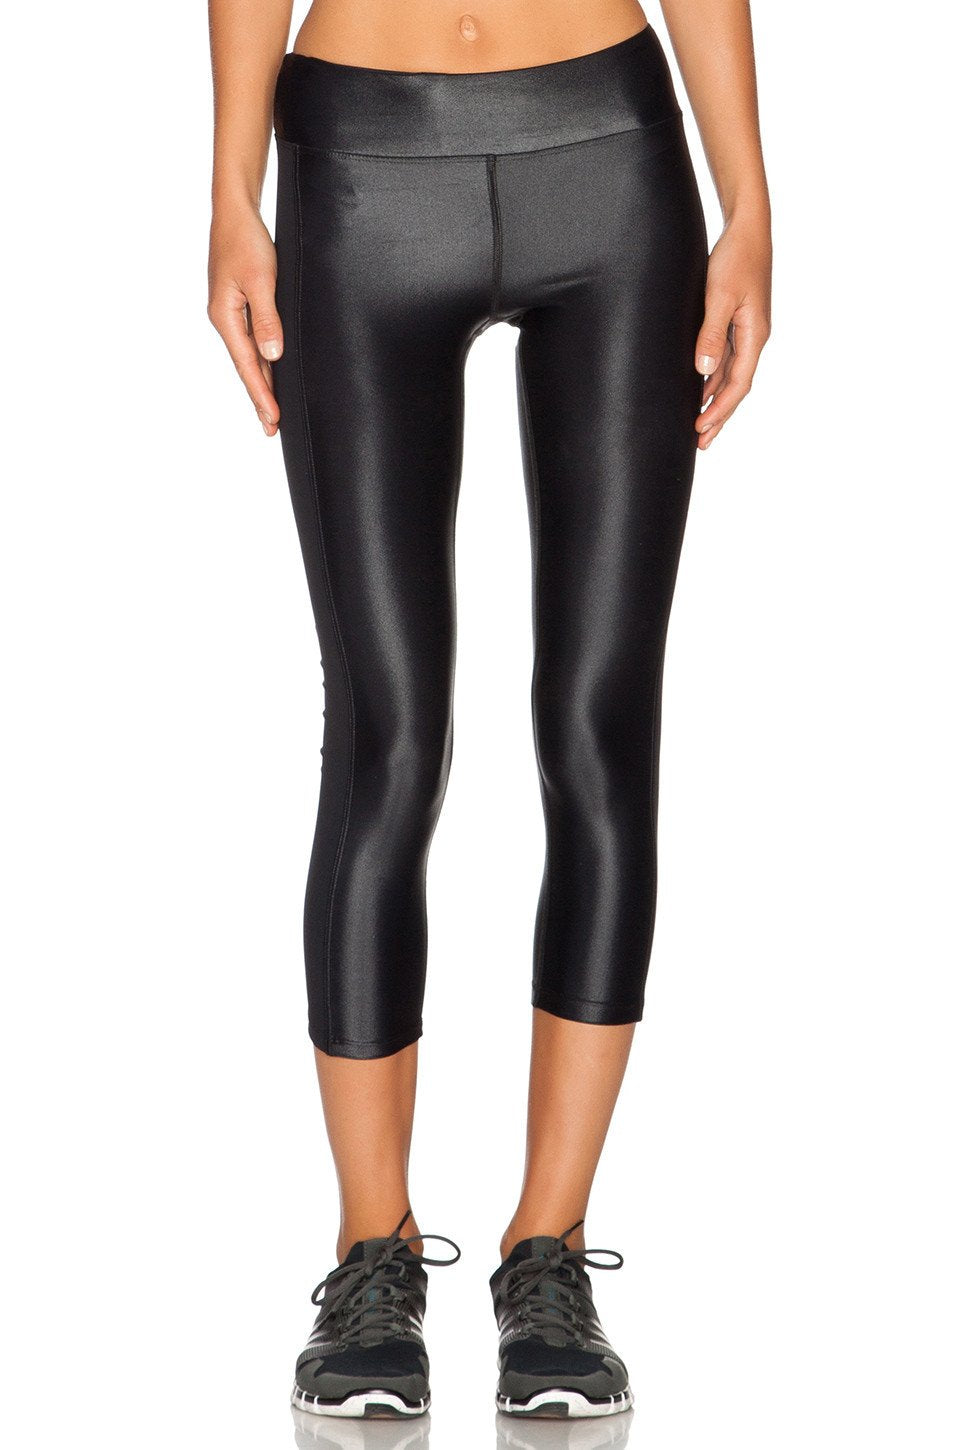 Dynamic Duo Capri Legging - Kustom Label - 1